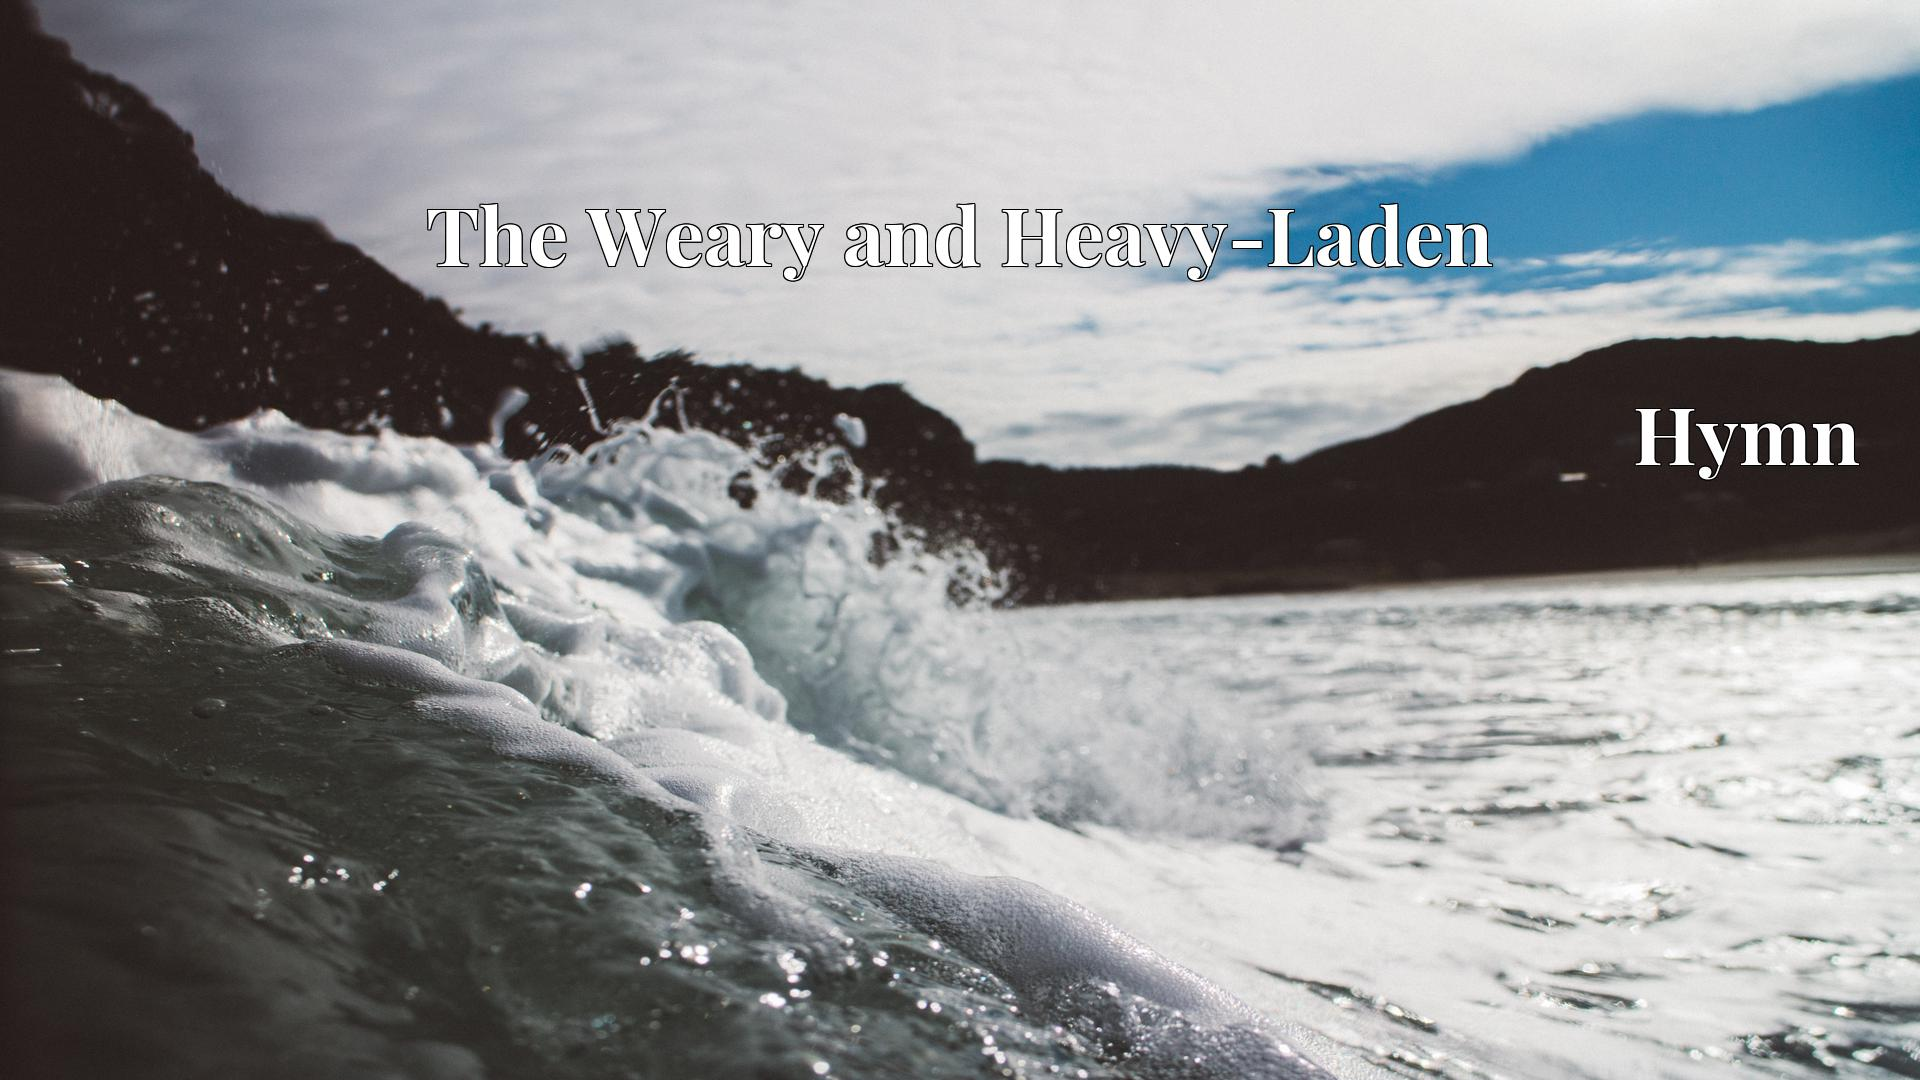 The Weary and Heavy-Laden - Hymn